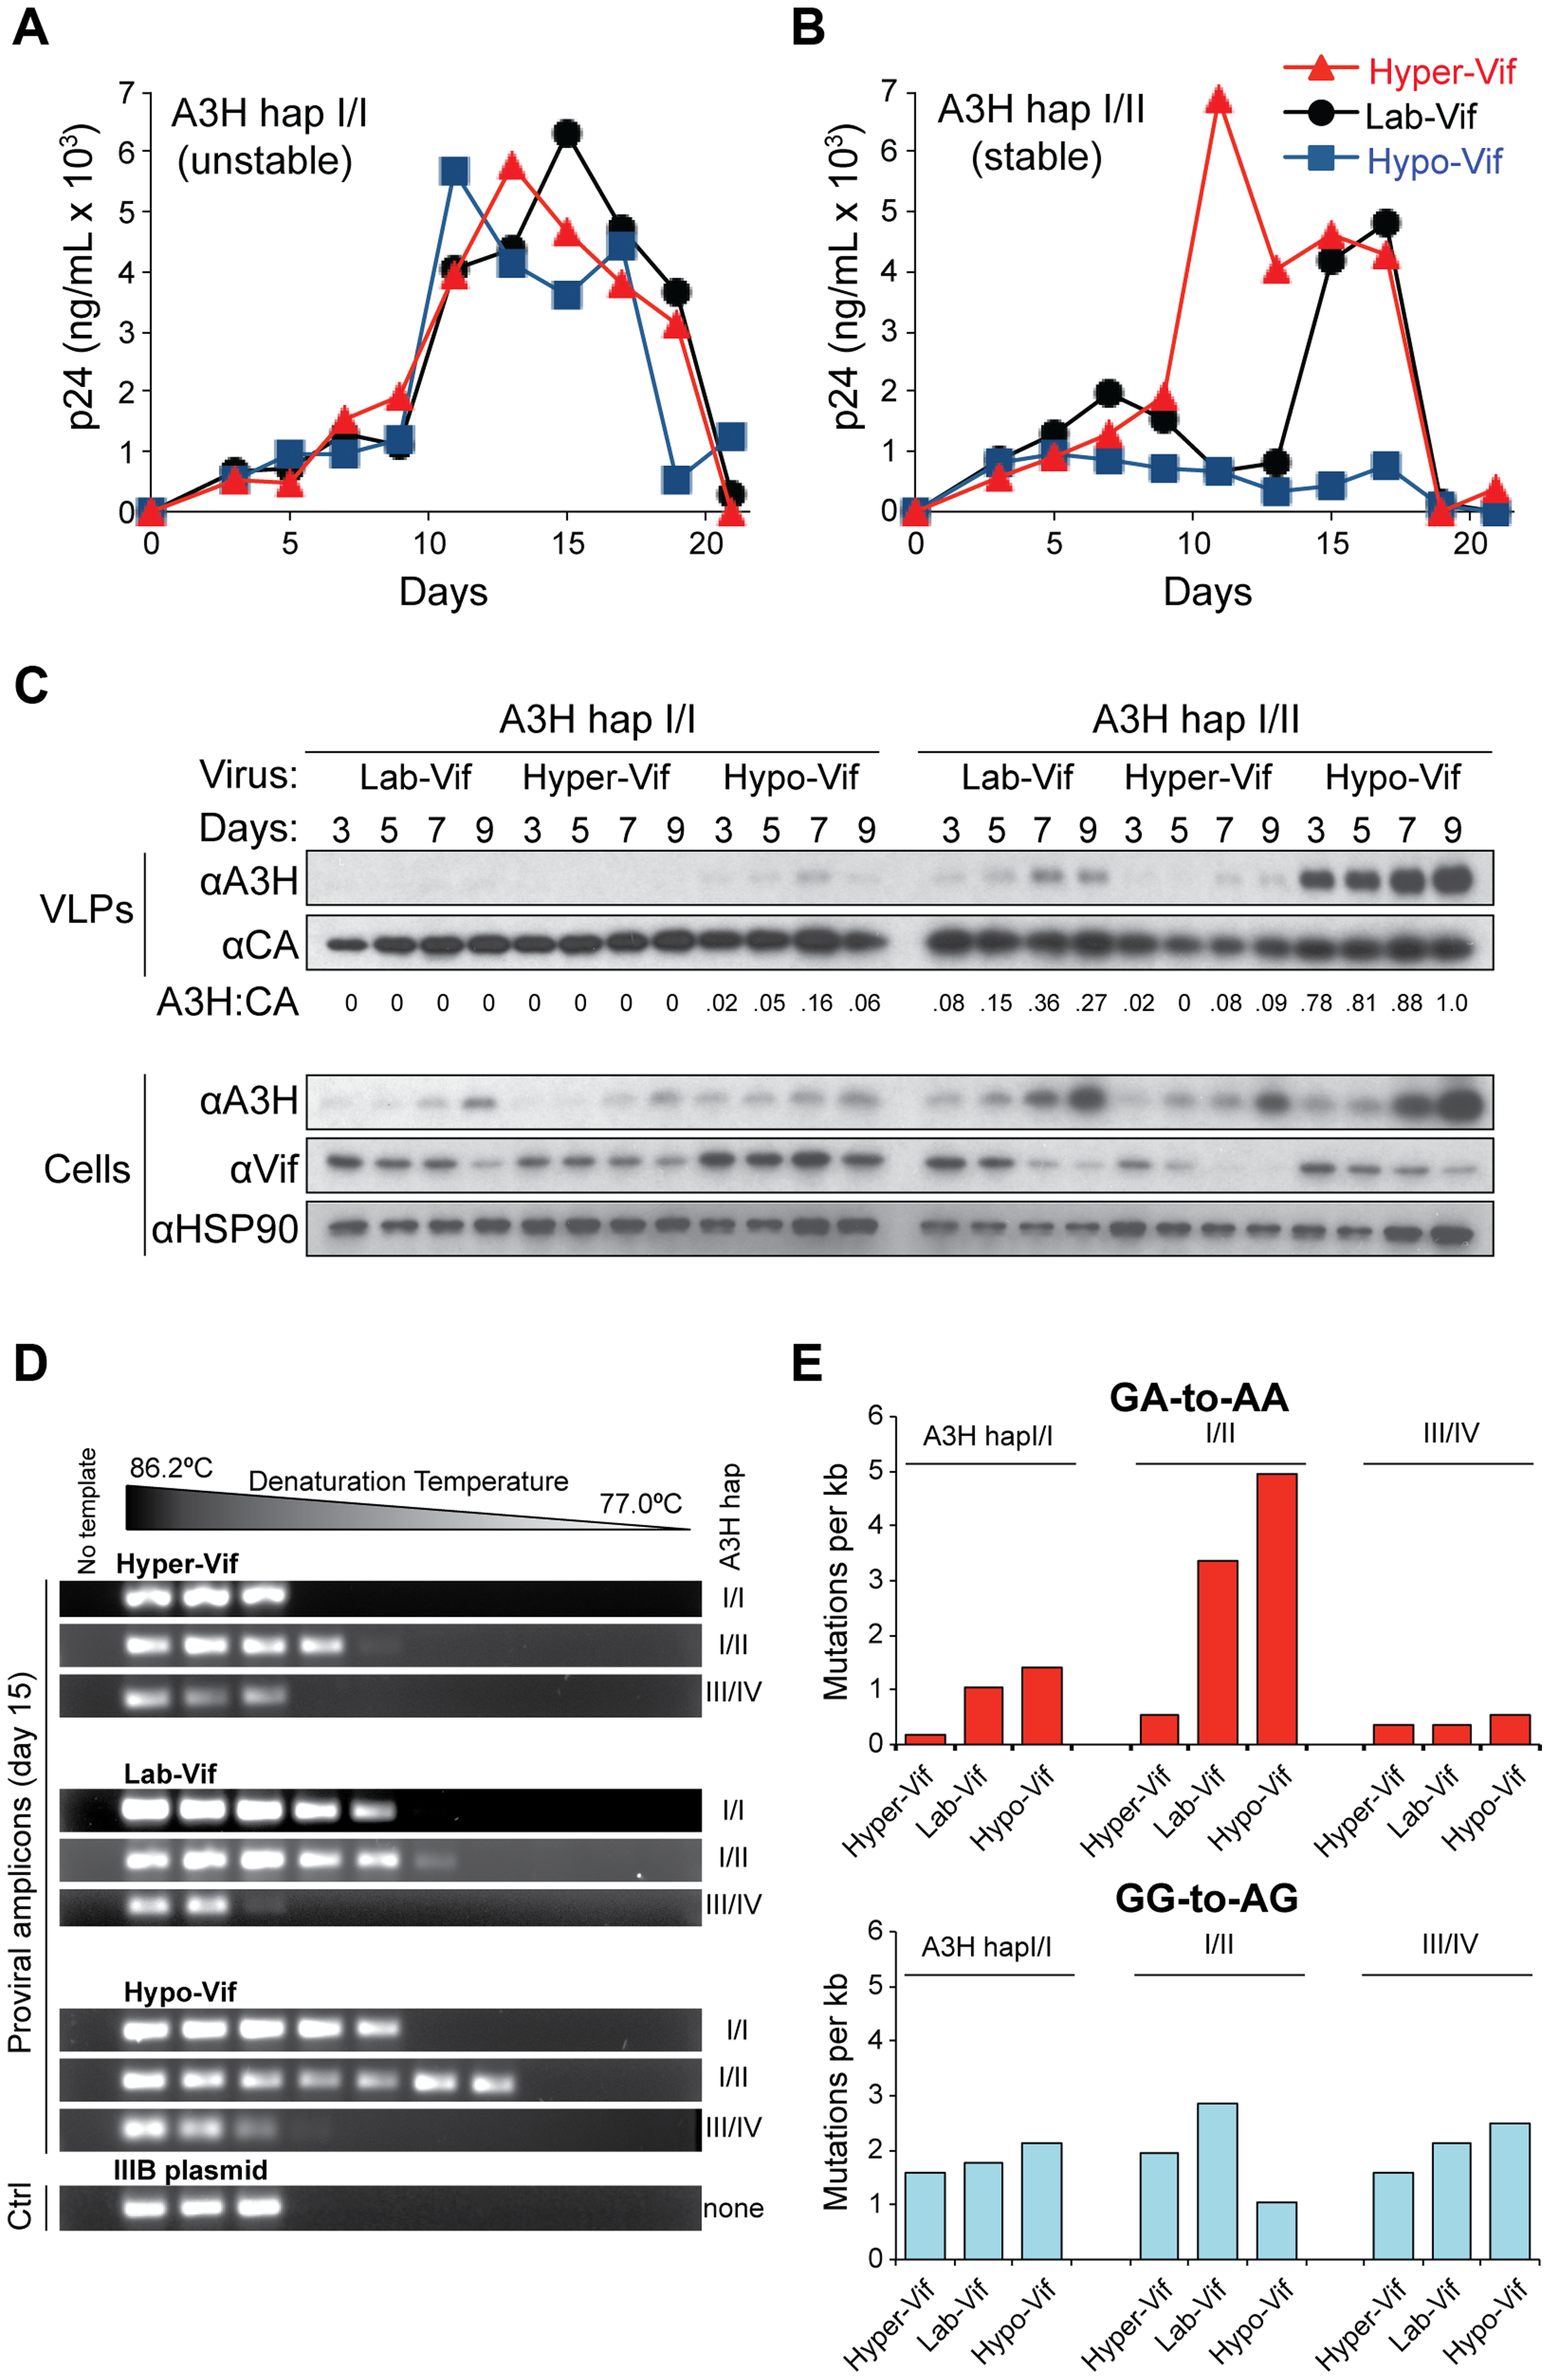 Stable APOBEC3H inhibits HIV-1 replication in primary T lymphocytes and inflicts GA-to-AA hypermutations.